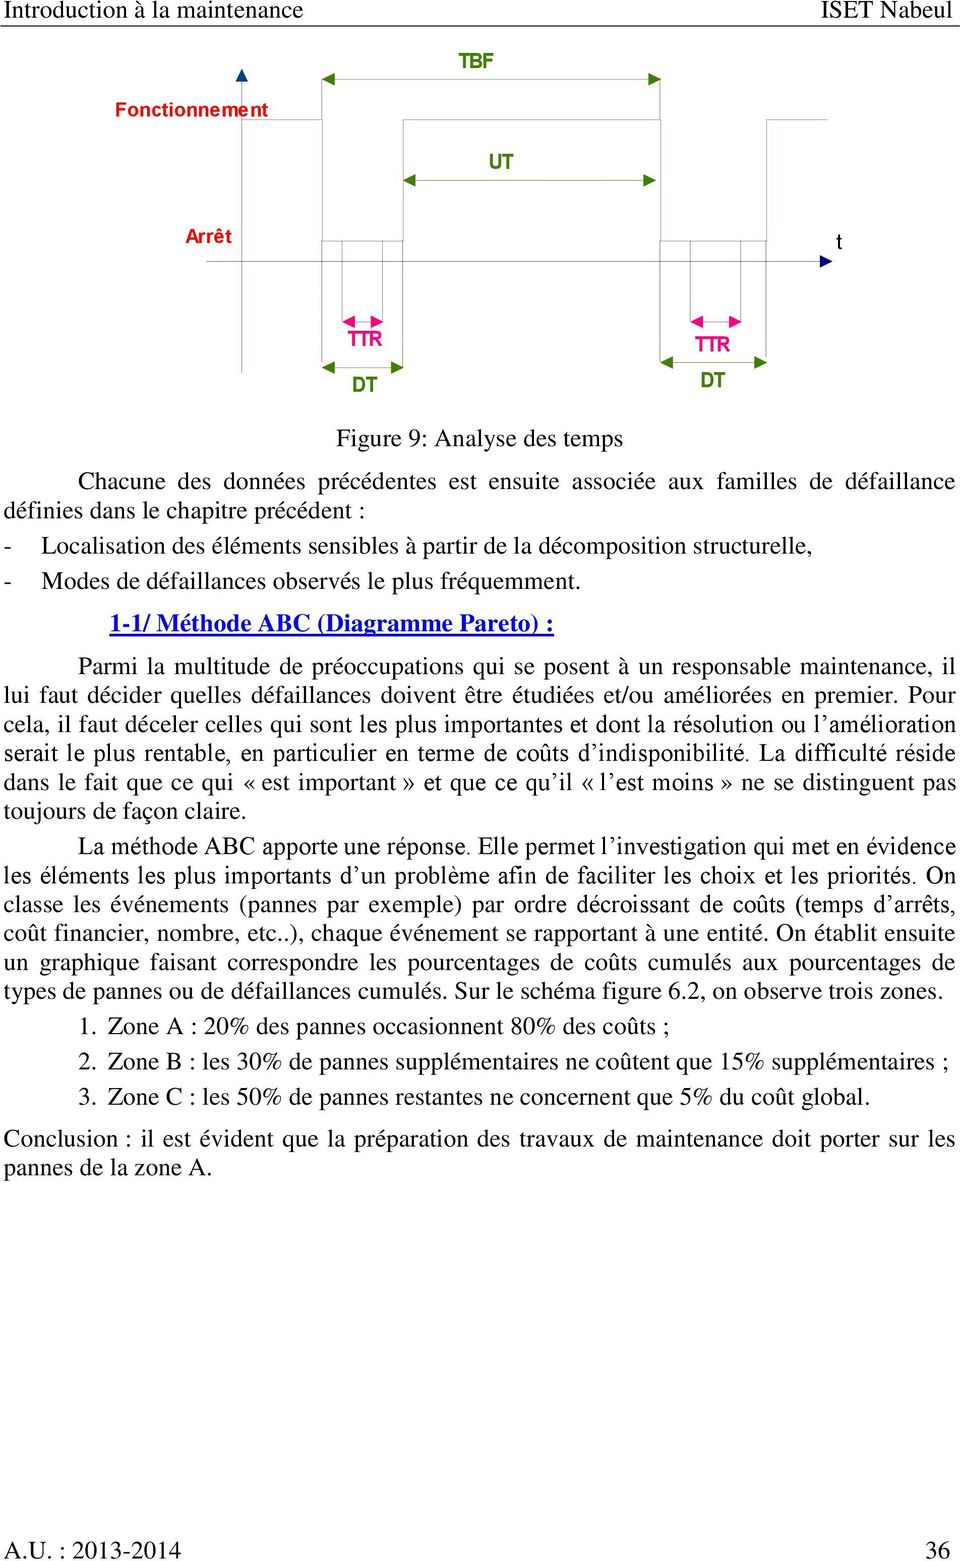 1-1/ Méthode ABC (Diagramme Pareto) : Parmi la multitude de préoccupations qui se posent à un responsable maintenance, il lui faut décider quelles défaillances doivent être étudiées et/ou améliorées